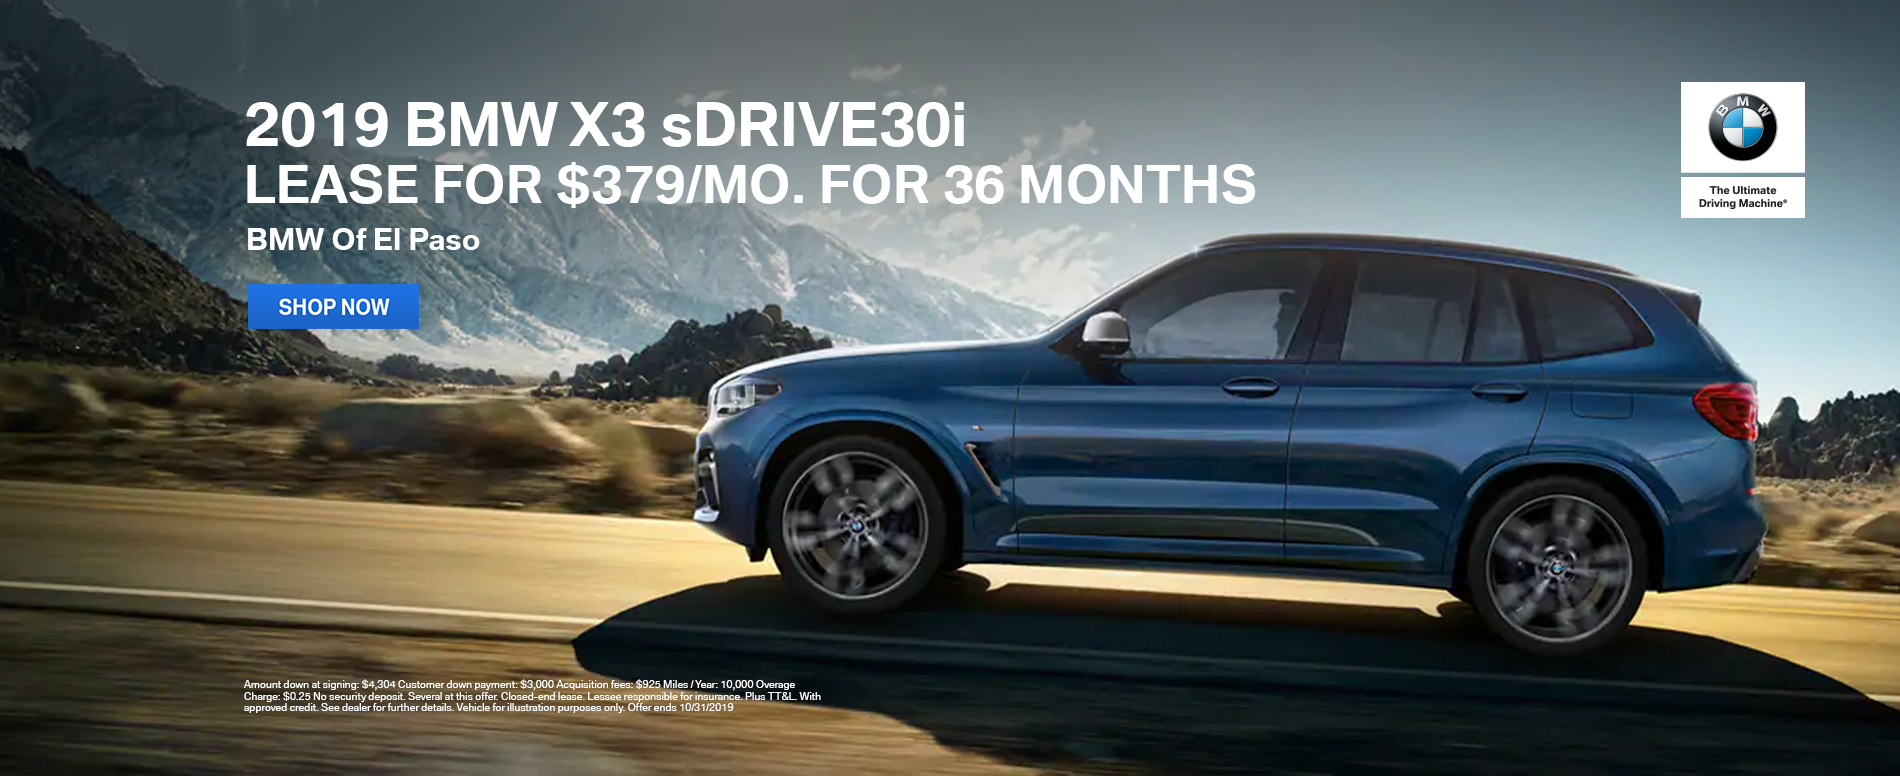 2019_BMW_El_Paso_X3_sDRIVE30i_Lease_Offer